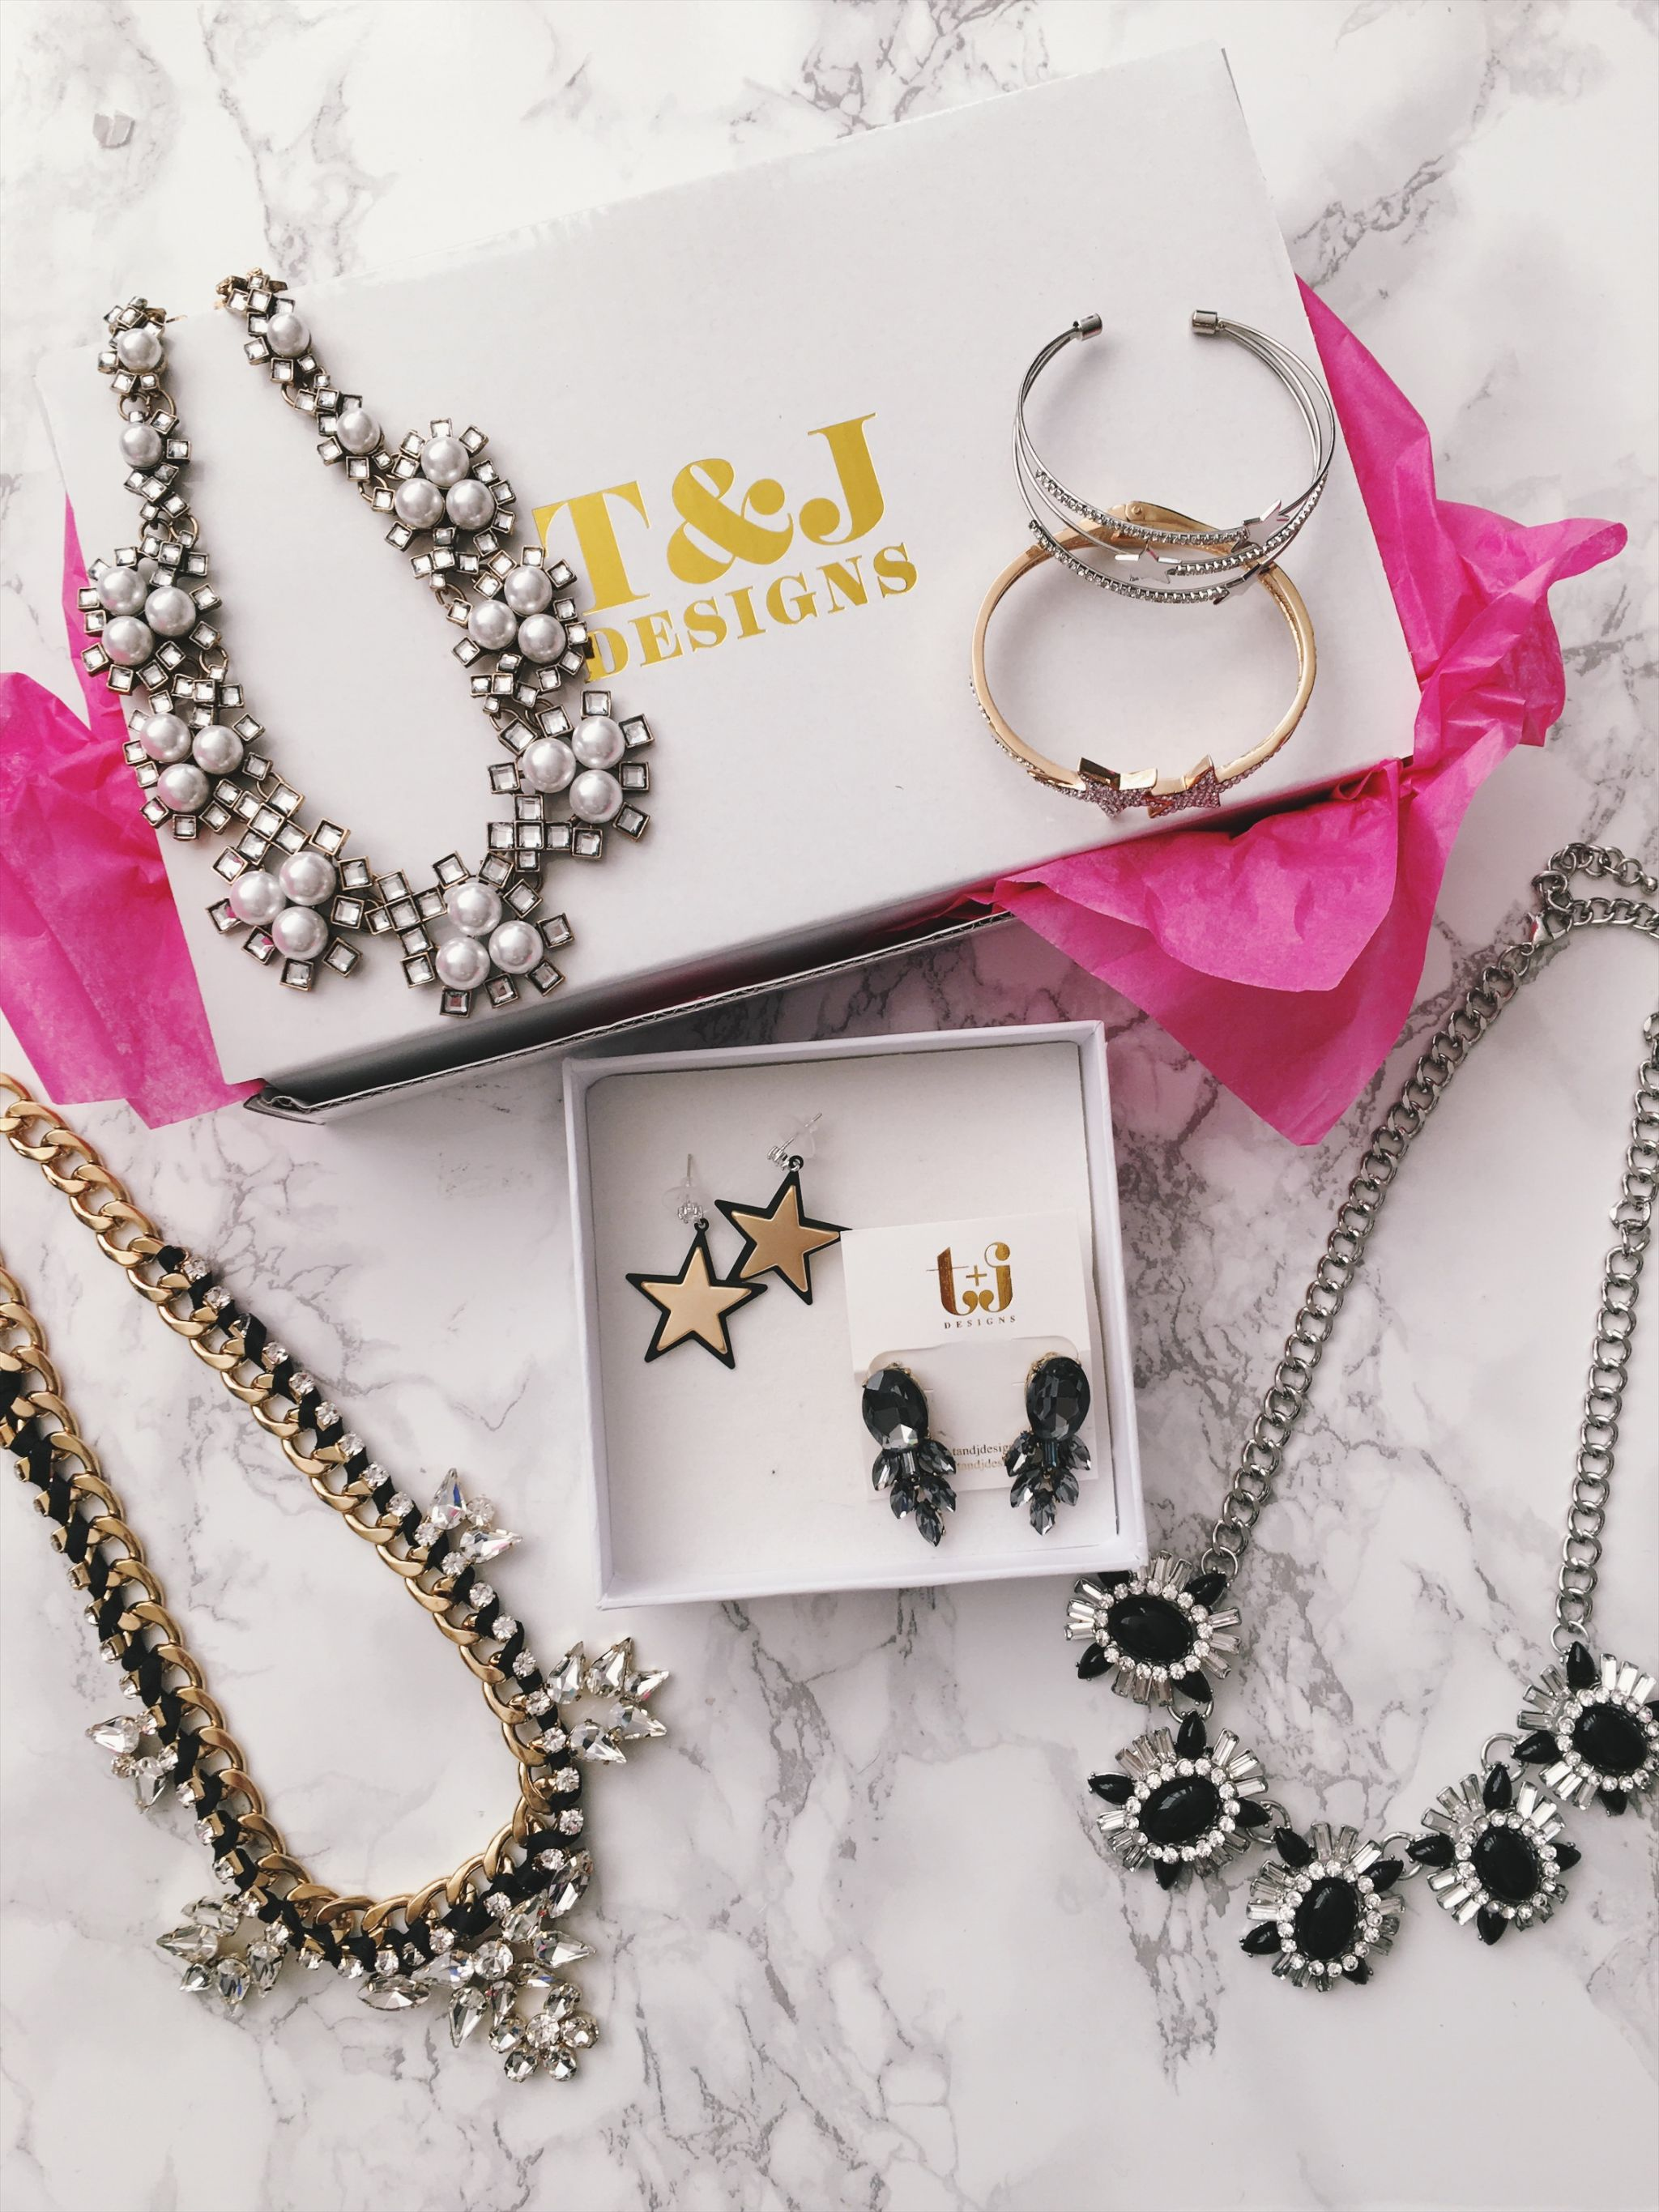 tiff and jen, T&J Designs, closing a chapter, entrepreneur tips, closing a business, women entrepreneurs, fashion jewelry